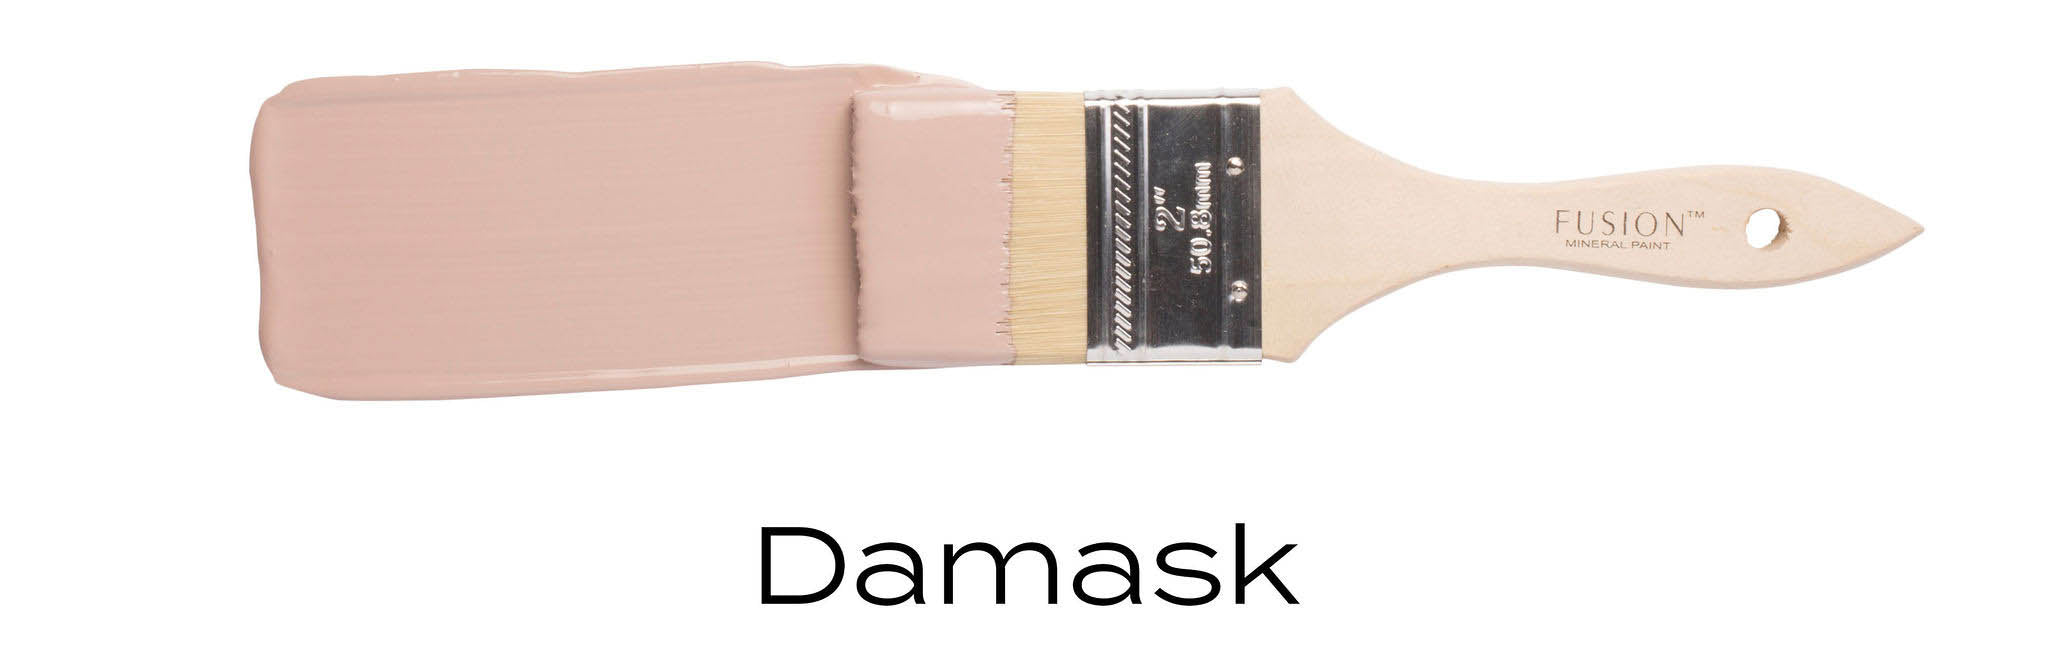 Damask pink toned furniture paint by fusion mineral paint on paint brush